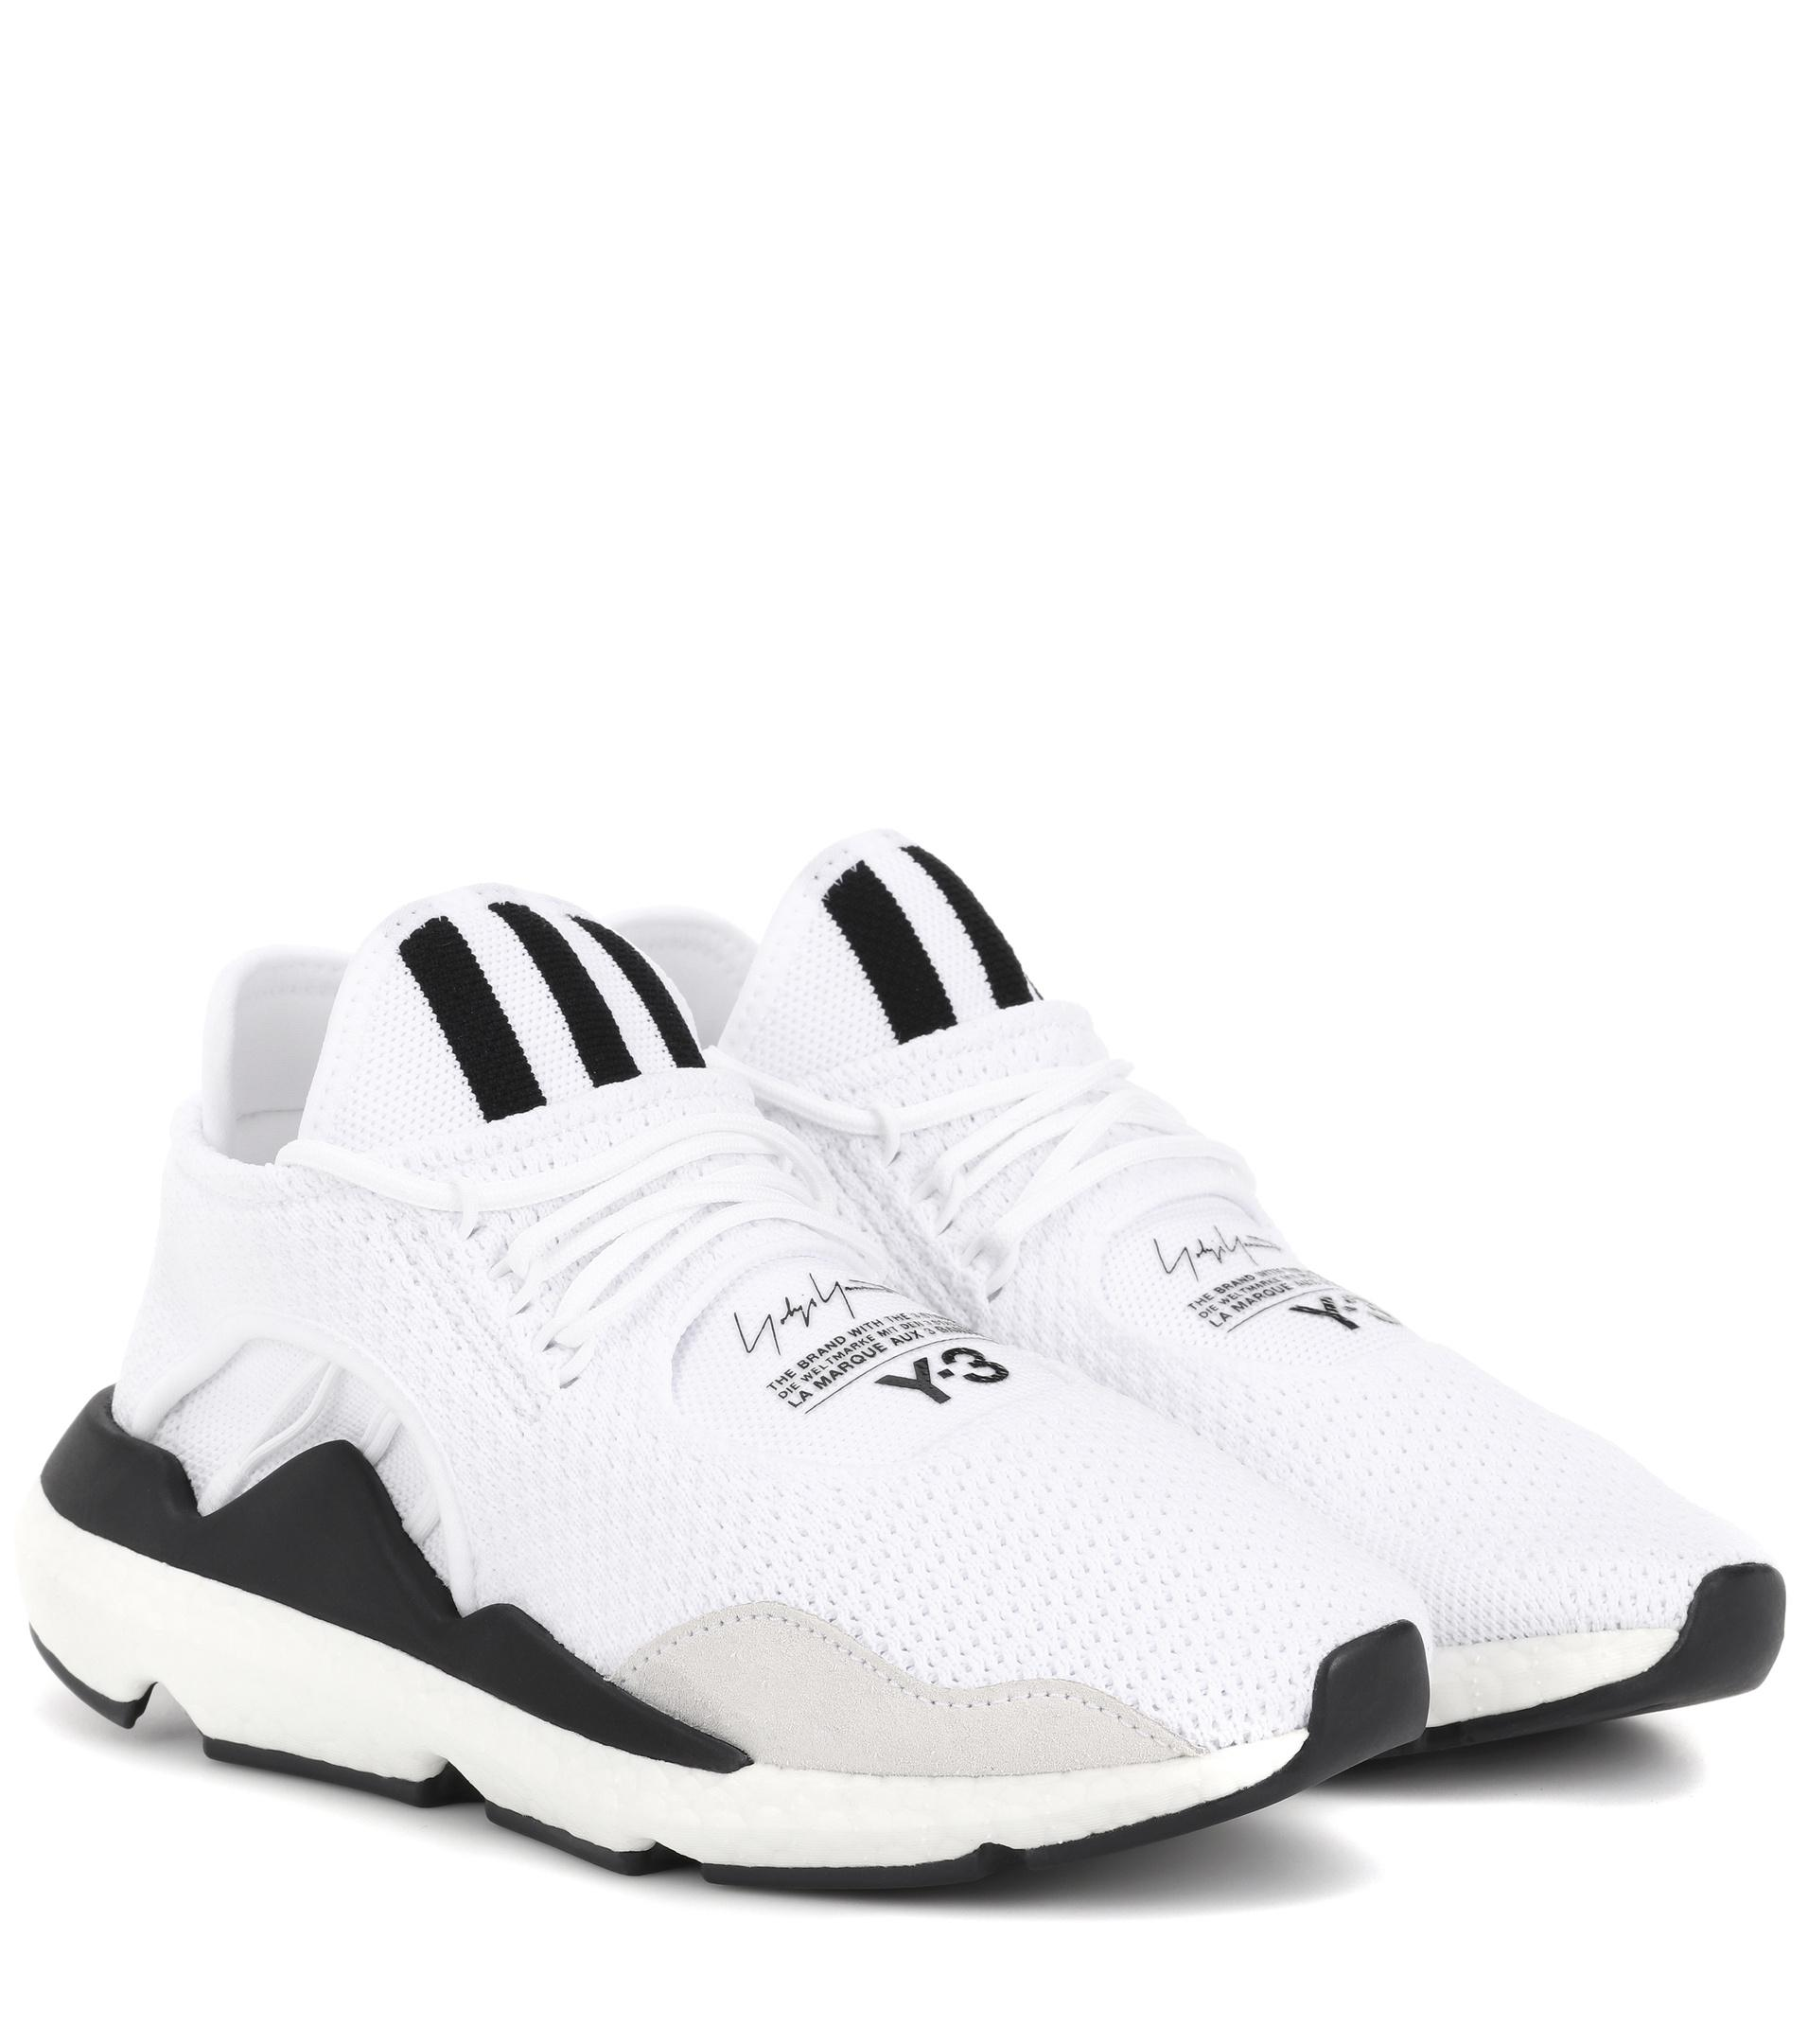 100% Authentic Sale Online Clearance Best Store To Get Y-3 Saikou suede-trimmed sneakers oOCjpu